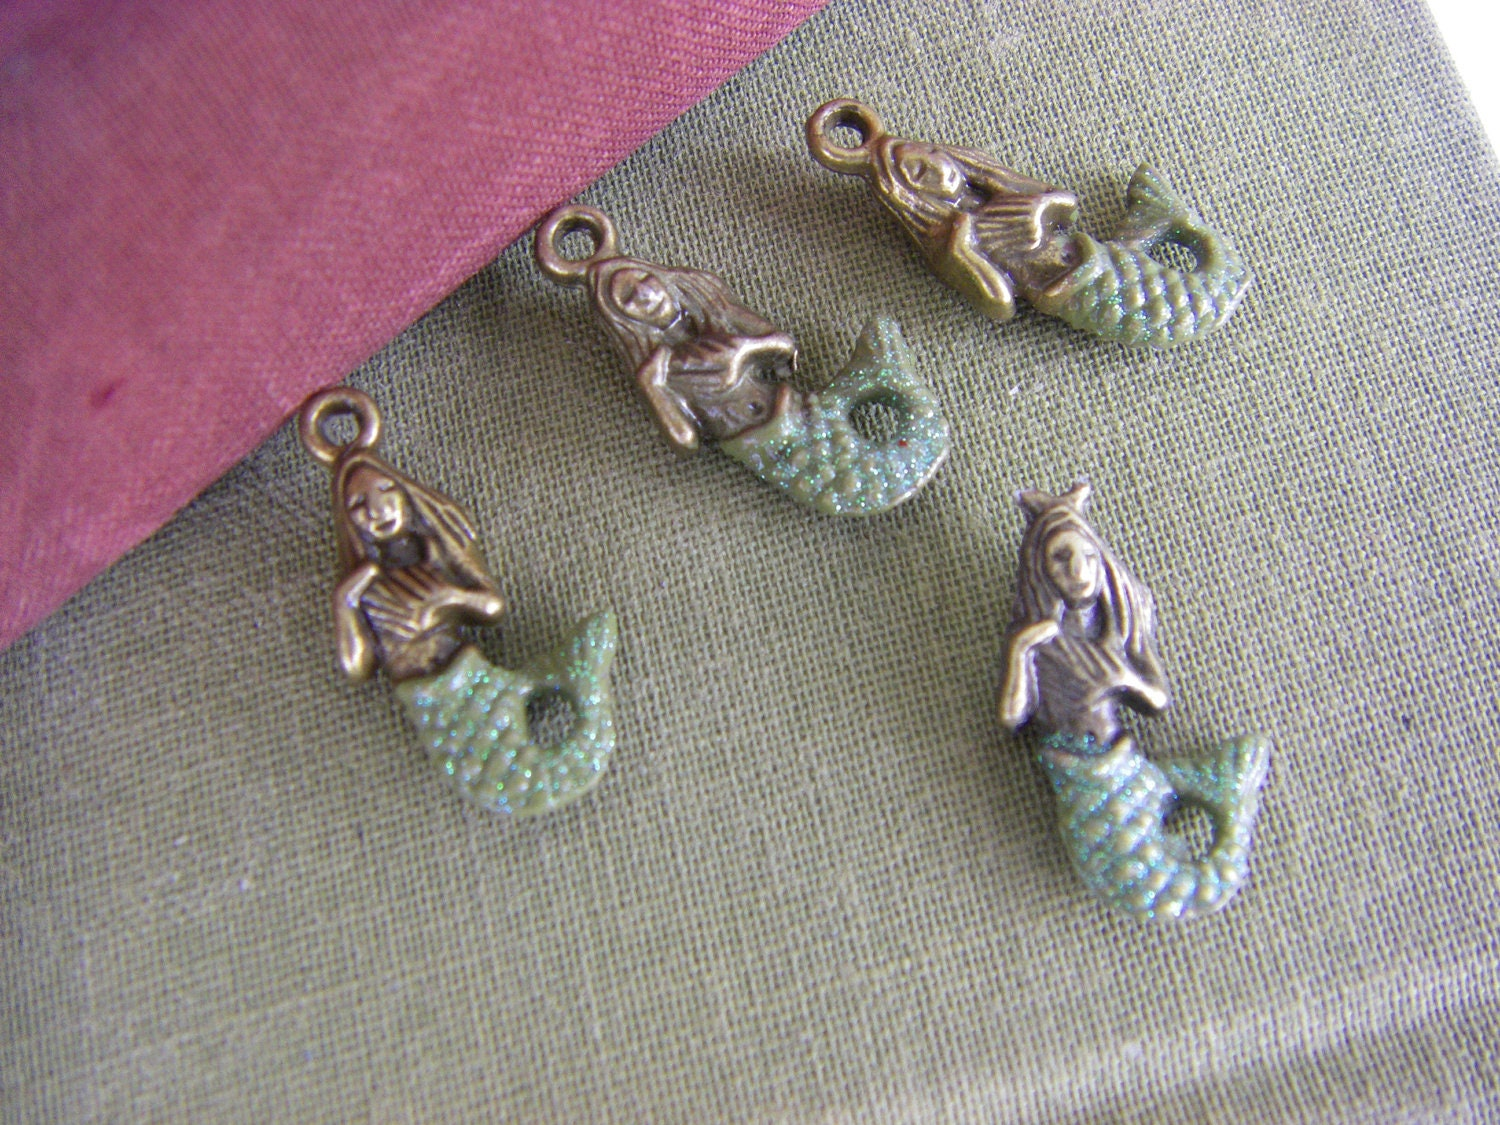 6 Hand Painted  Brass Mermaid Charms - green shimmer tails quantity 6